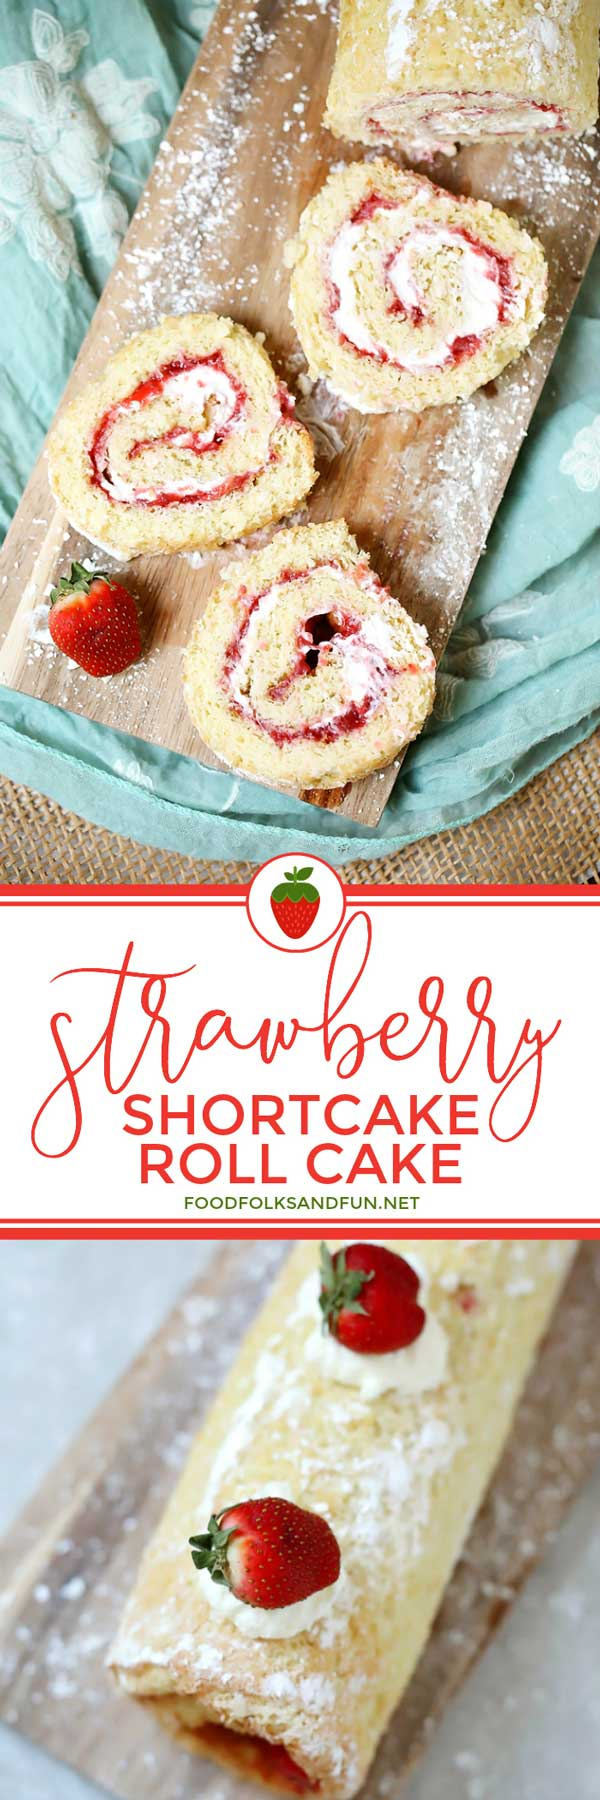 Picture collage of strawberry shortcake roll cake slices and then entire cake.